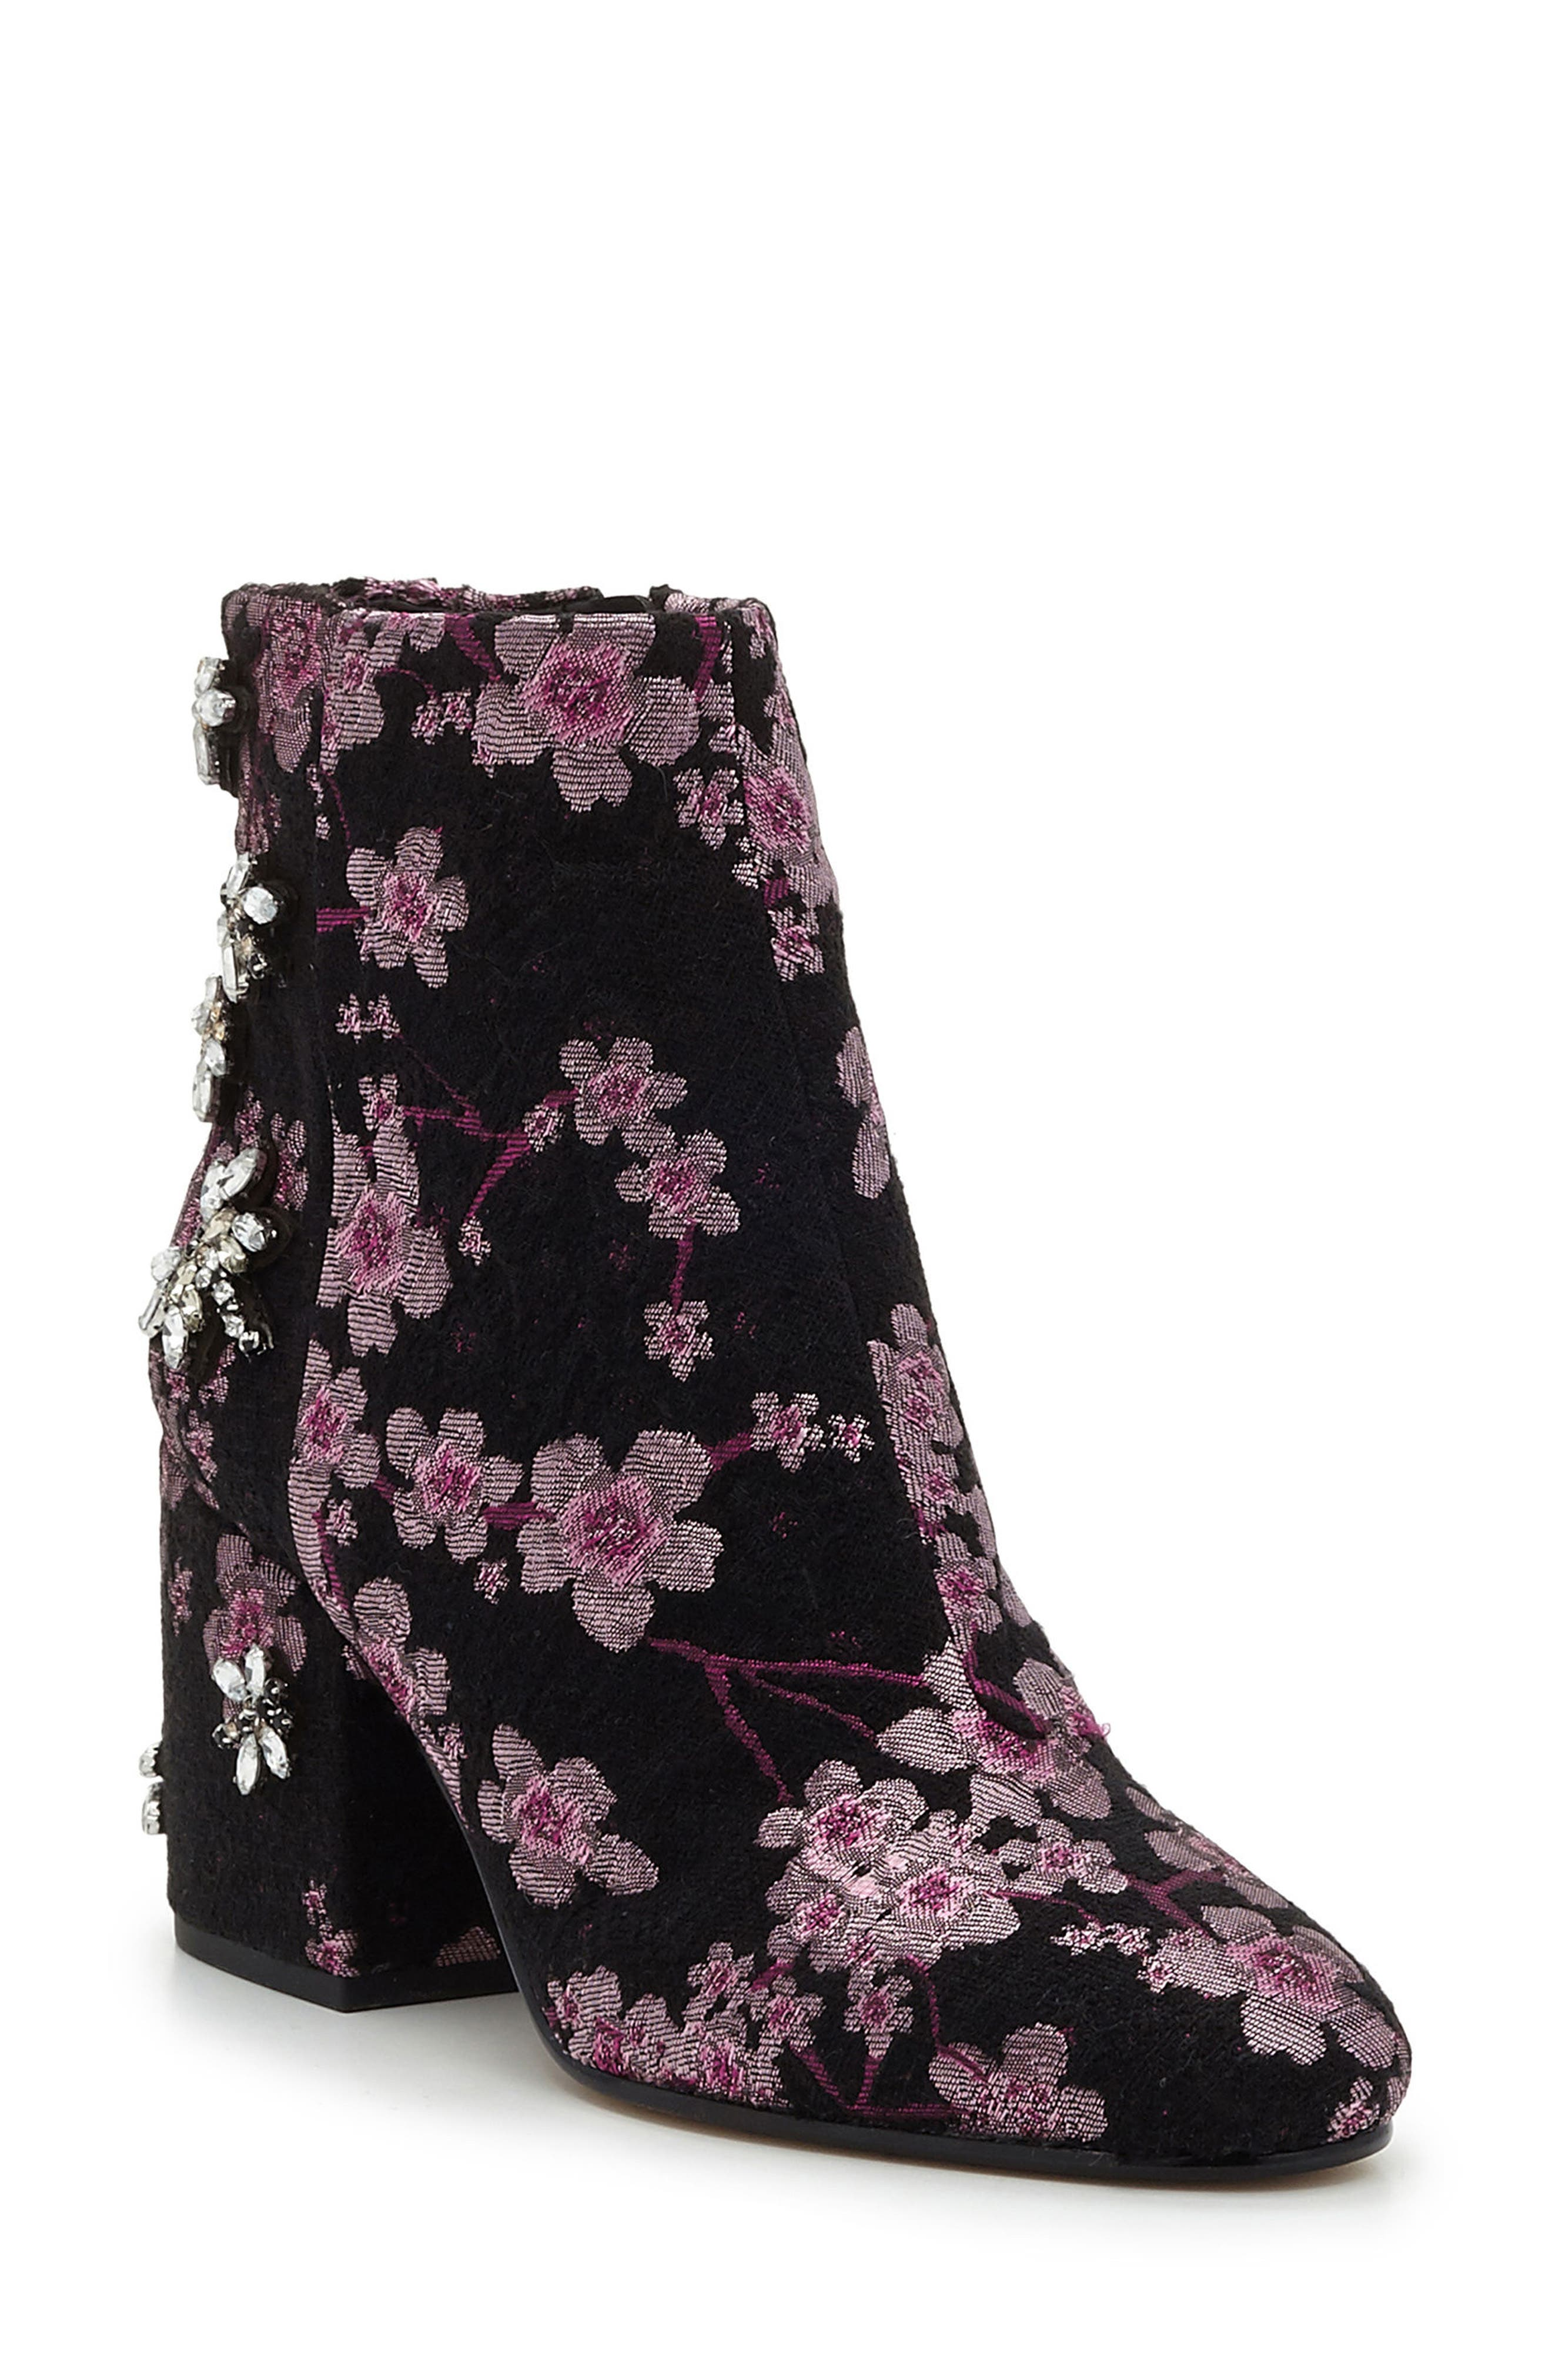 'Taye' Bootie,                             Main thumbnail 1, color,                             Pink Multi Brocade